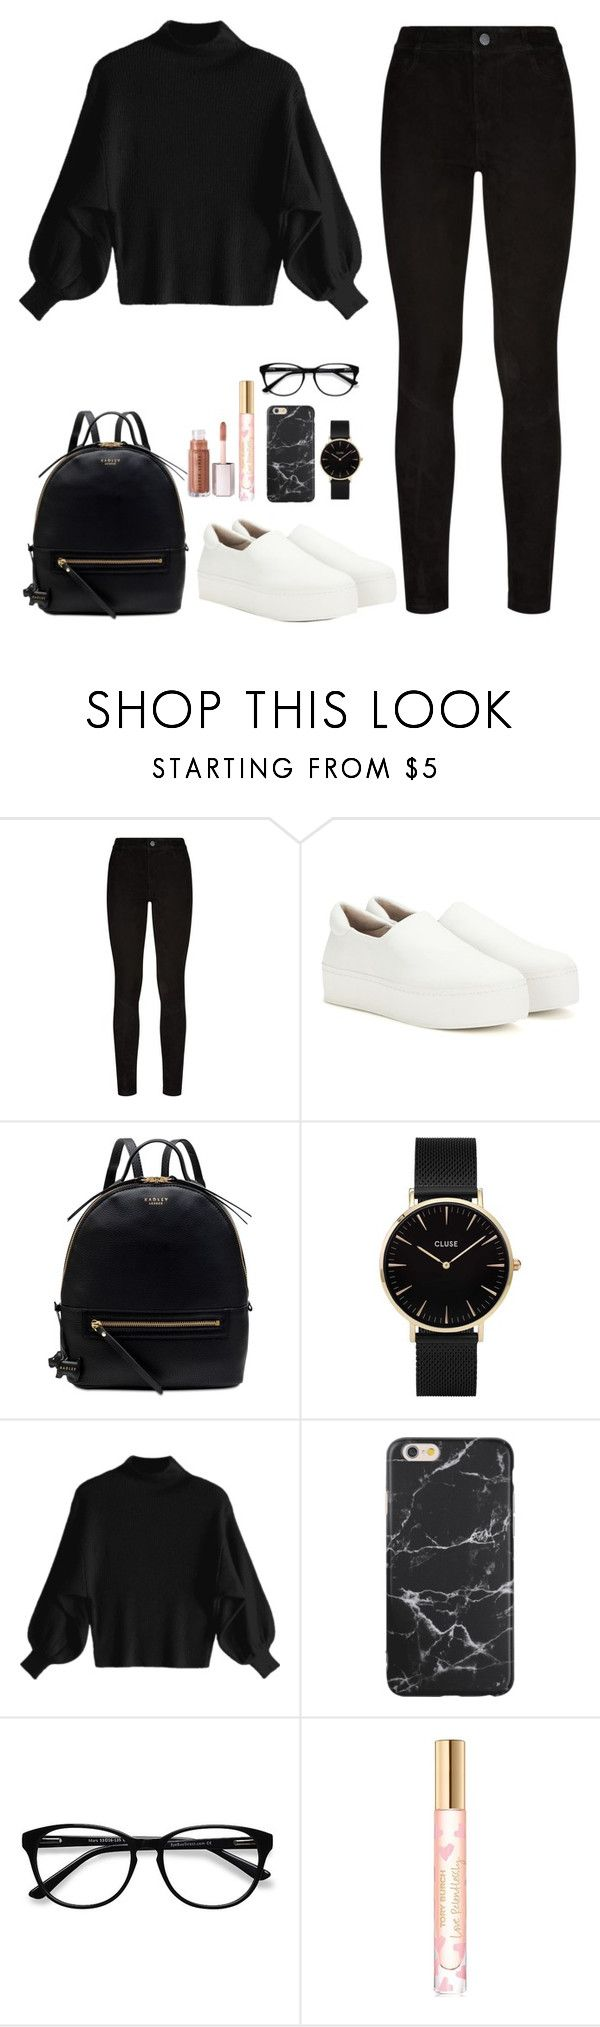 """Cool"" by fatyespinosa1 on Polyvore featuring moda, Paige Denim, Opening Ceremony, Radley, CLUSE, EyeBuyDirect.com y Tory Burch"